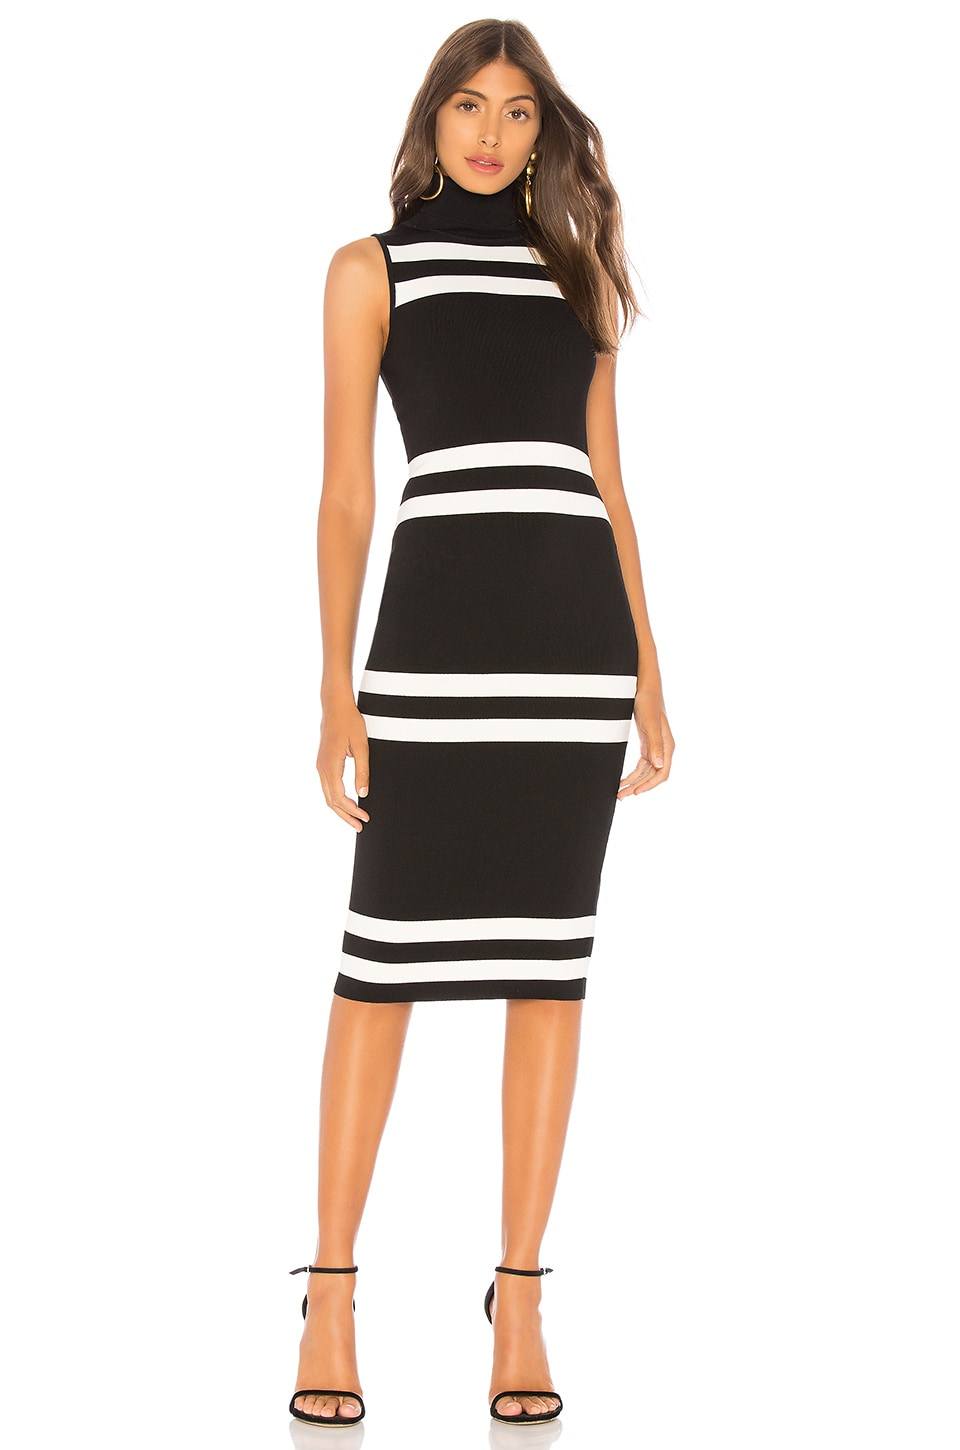 About Us Fiona Bodycon in Black & White